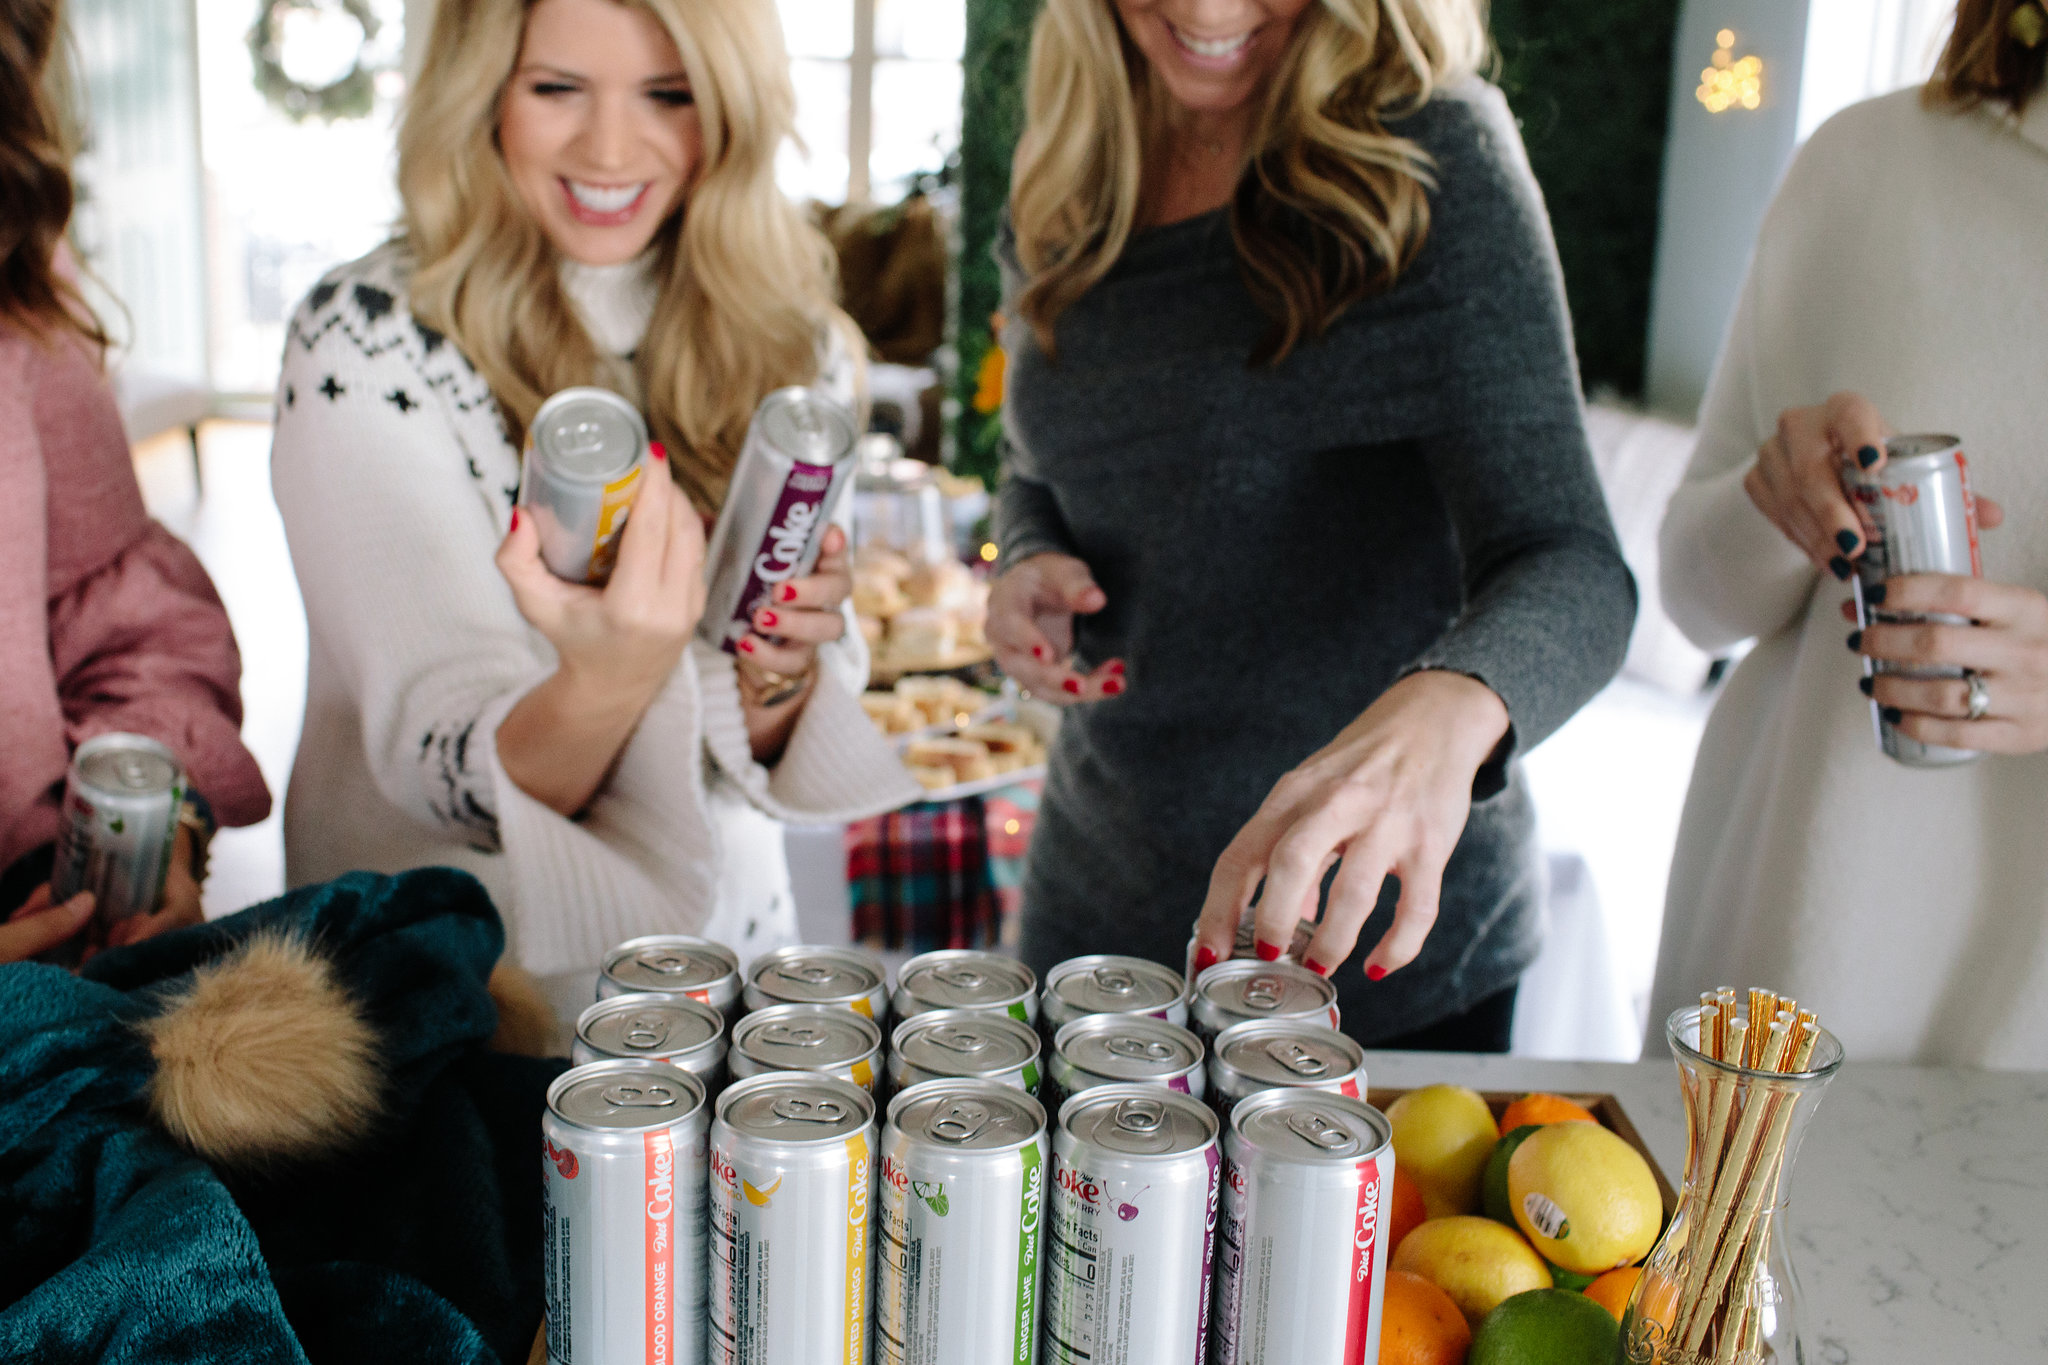 Today on Every Chic Way, I am so excited to share with you some exciting news! I will be introducing the new flavors of Diet Coke!